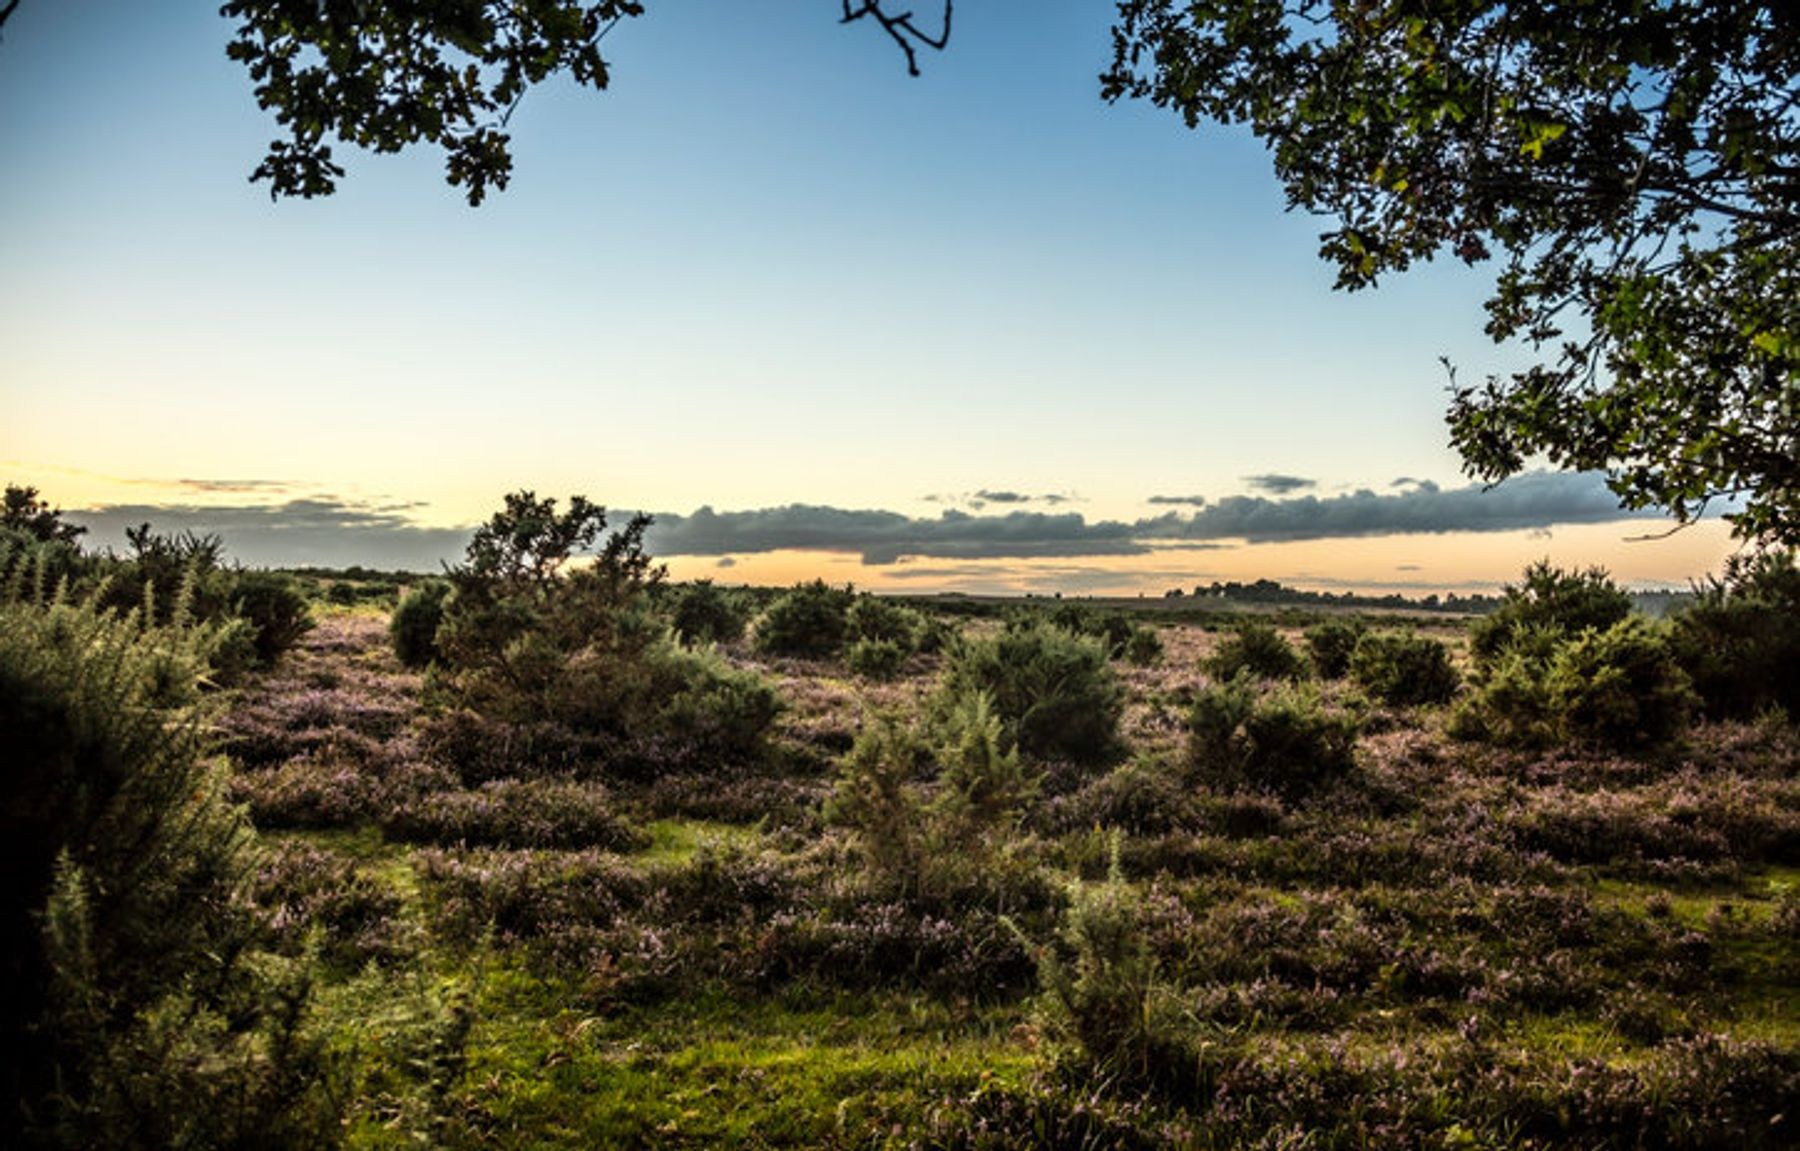 Other wordly landscapes of the New Forest, England